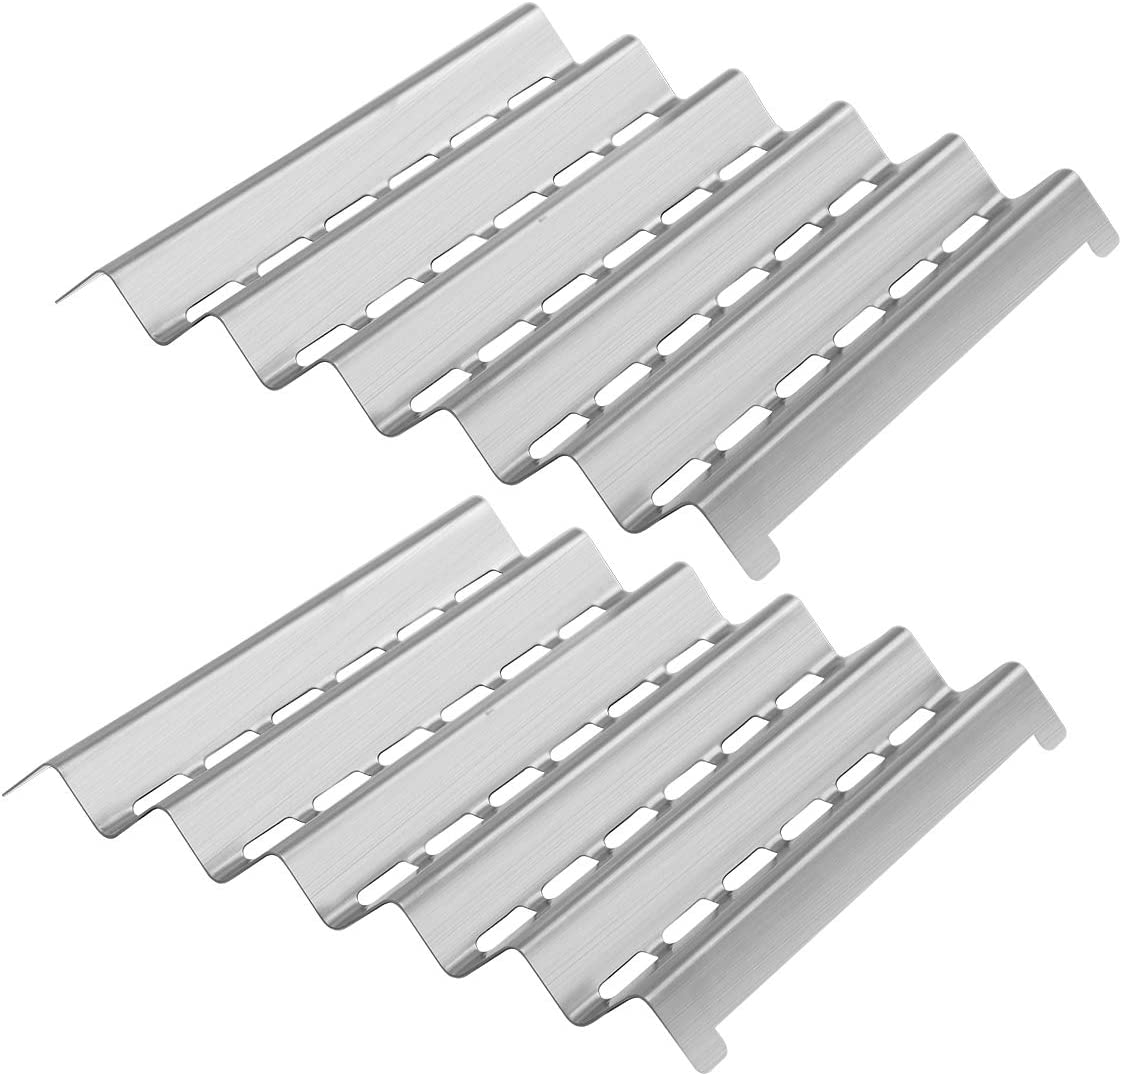 Damile Stainless Steel Grill Heat Plates Shield Burner Cover Flame Tamer, BBQ Gas Grill Replacement Parts for Brinkmann 2500 Pro Series, 4615, 810-2500, 810-2500-0, 810-4615-0, Pro Series 2500, 4615 : Patio, Lawn & Garden